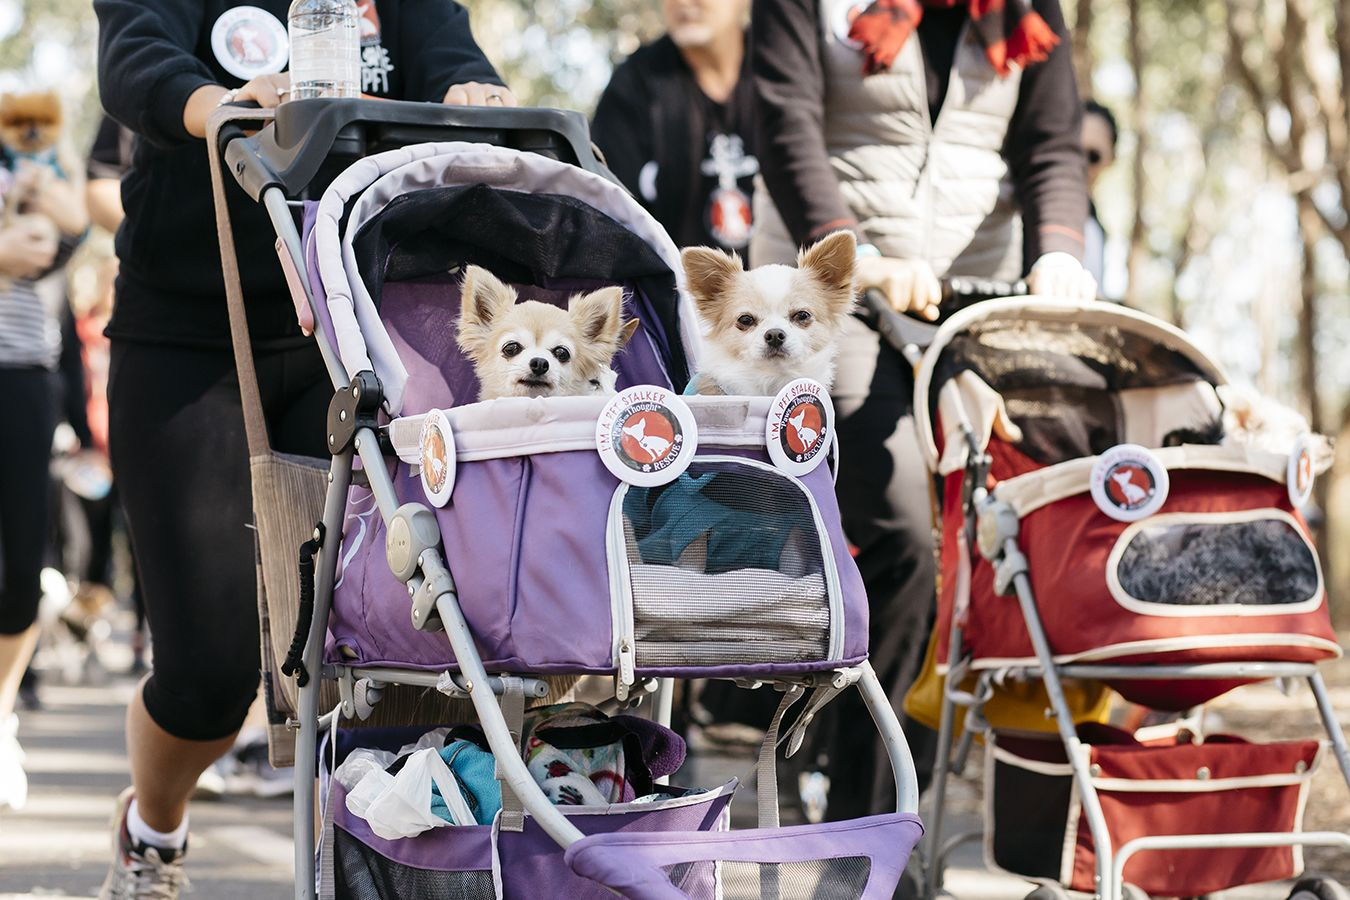 Rspca Million Paws Walk 2019 May 19 Australian Dog Lover Fight Animal Cruelty Dogs Day Out Australia Animals